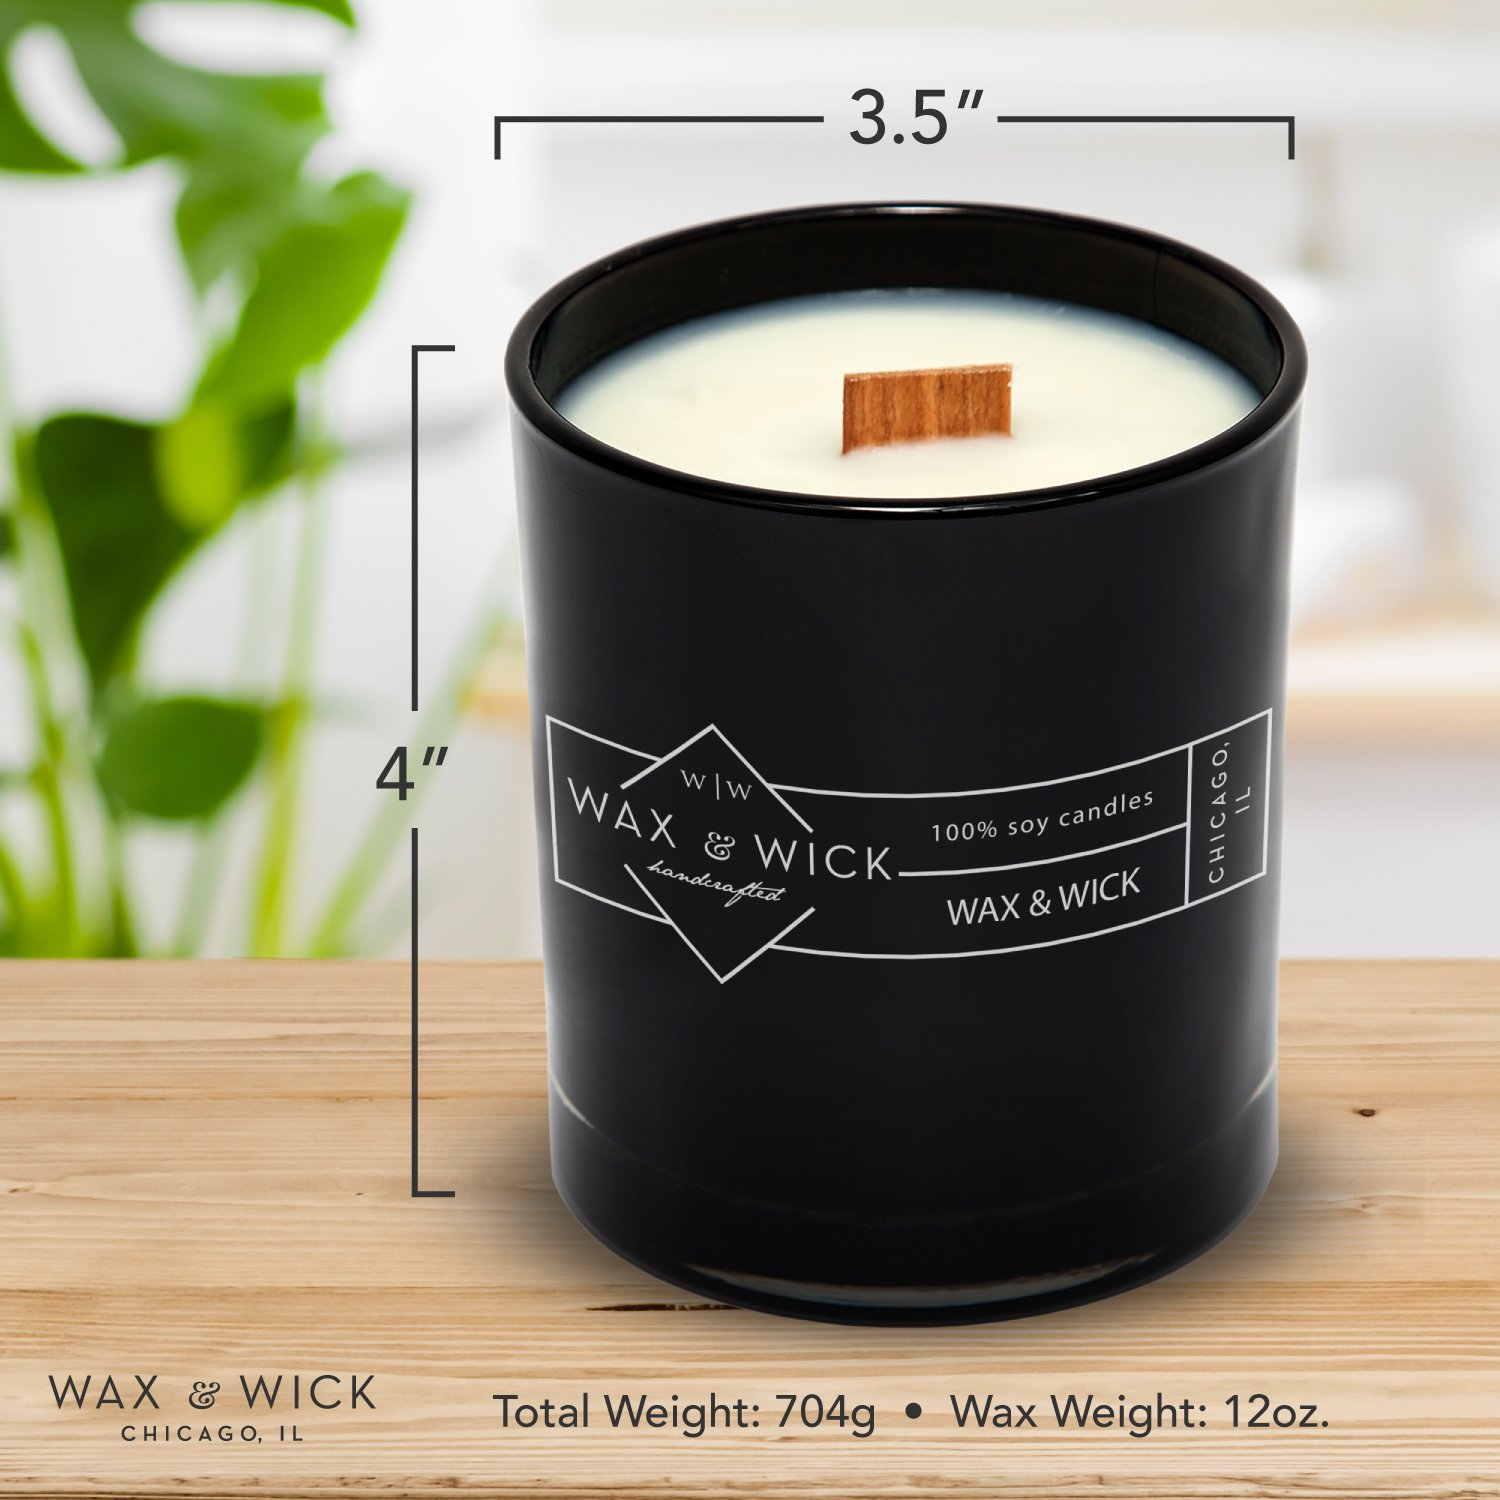 Scented Soy Candle: 100% Pure Soy Wax with Wood Double Wick | Burns Cleanly up to 60 Hrs | Mulled Cider Scent - Notes of Apple, Nutmeg, Vanilla, Caramel. | 12 oz Black Jar by Wax and Wick by Wax & Wick (Image #7)